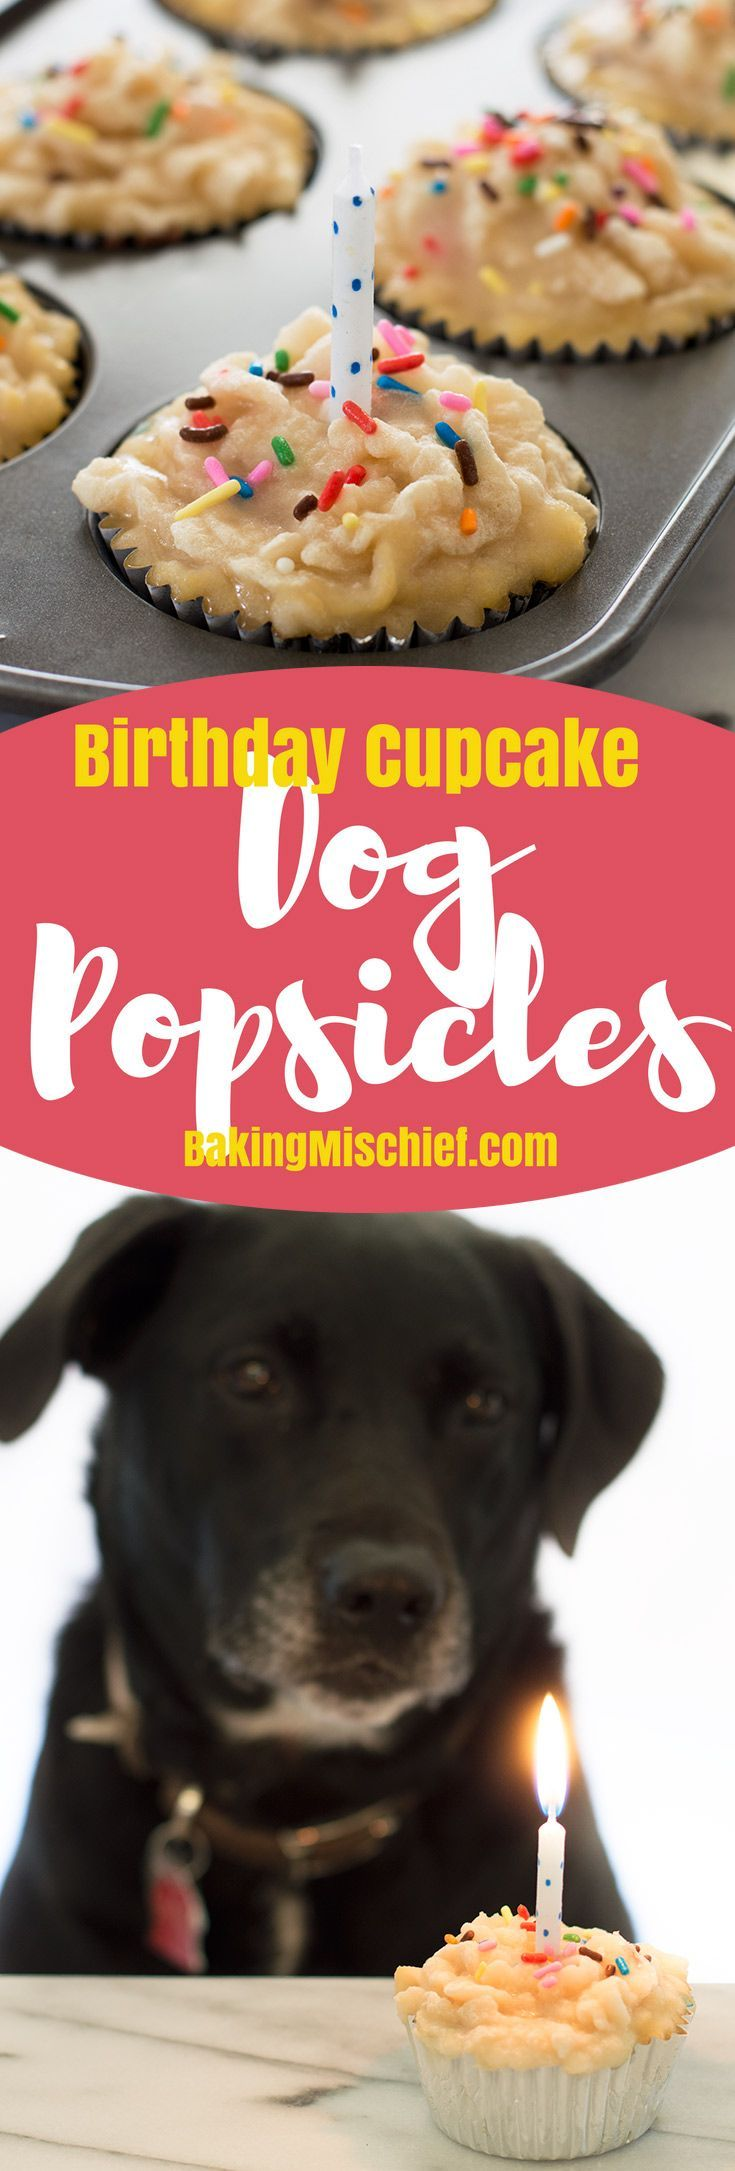 Cupcake-shaped dog popsicles made with chicken broth and a pureed tuna frosting. Simple to make and your dog is going to LOVE them! From http://BakingMischief.com